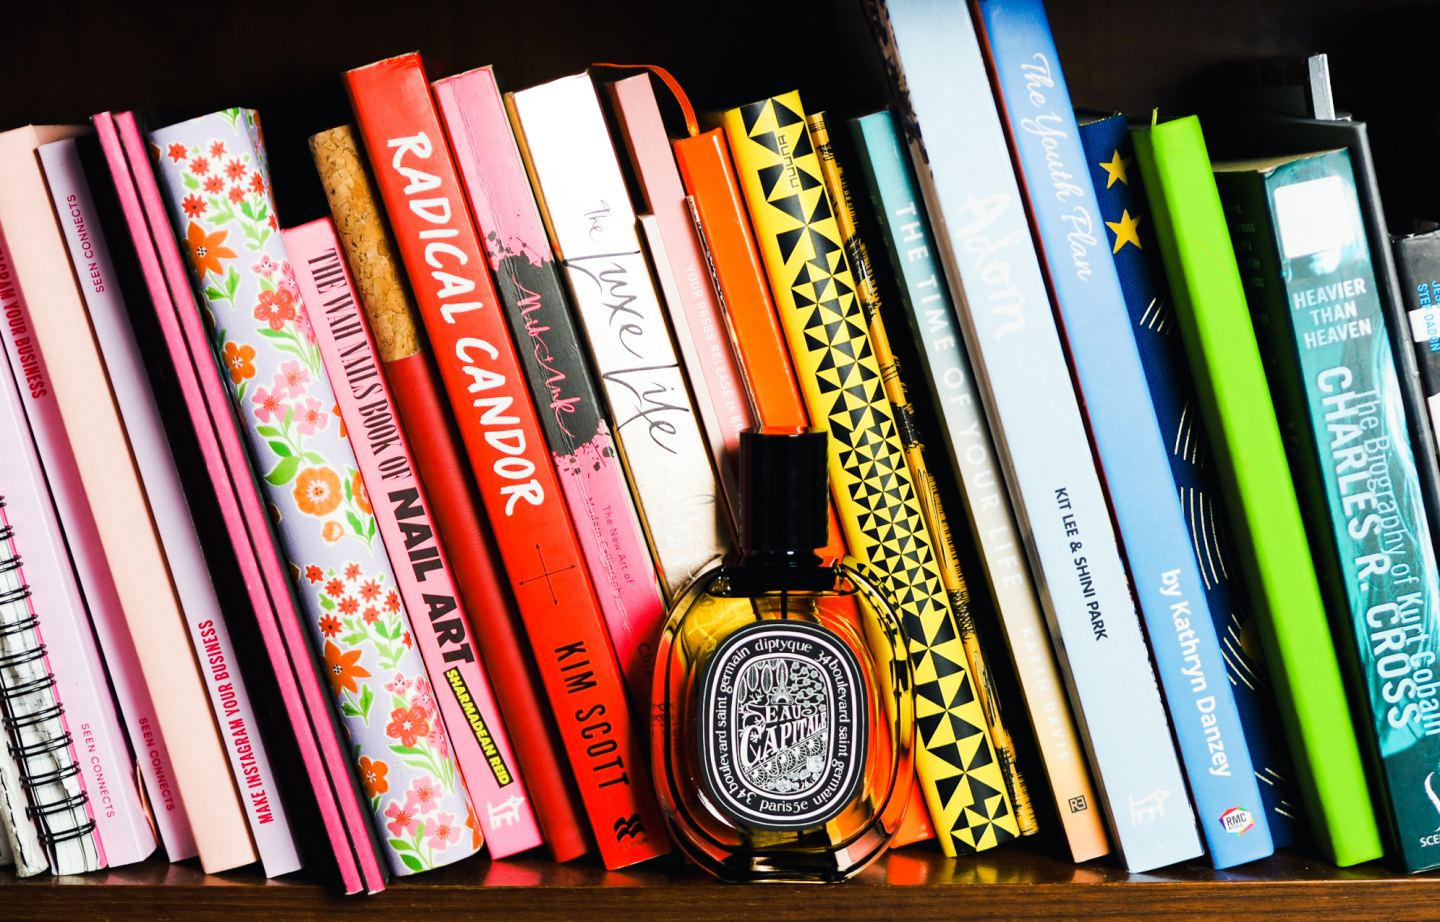 Diptyque 'Eau Capitale' perfume review Diptyque 'Eau Capitale' Review